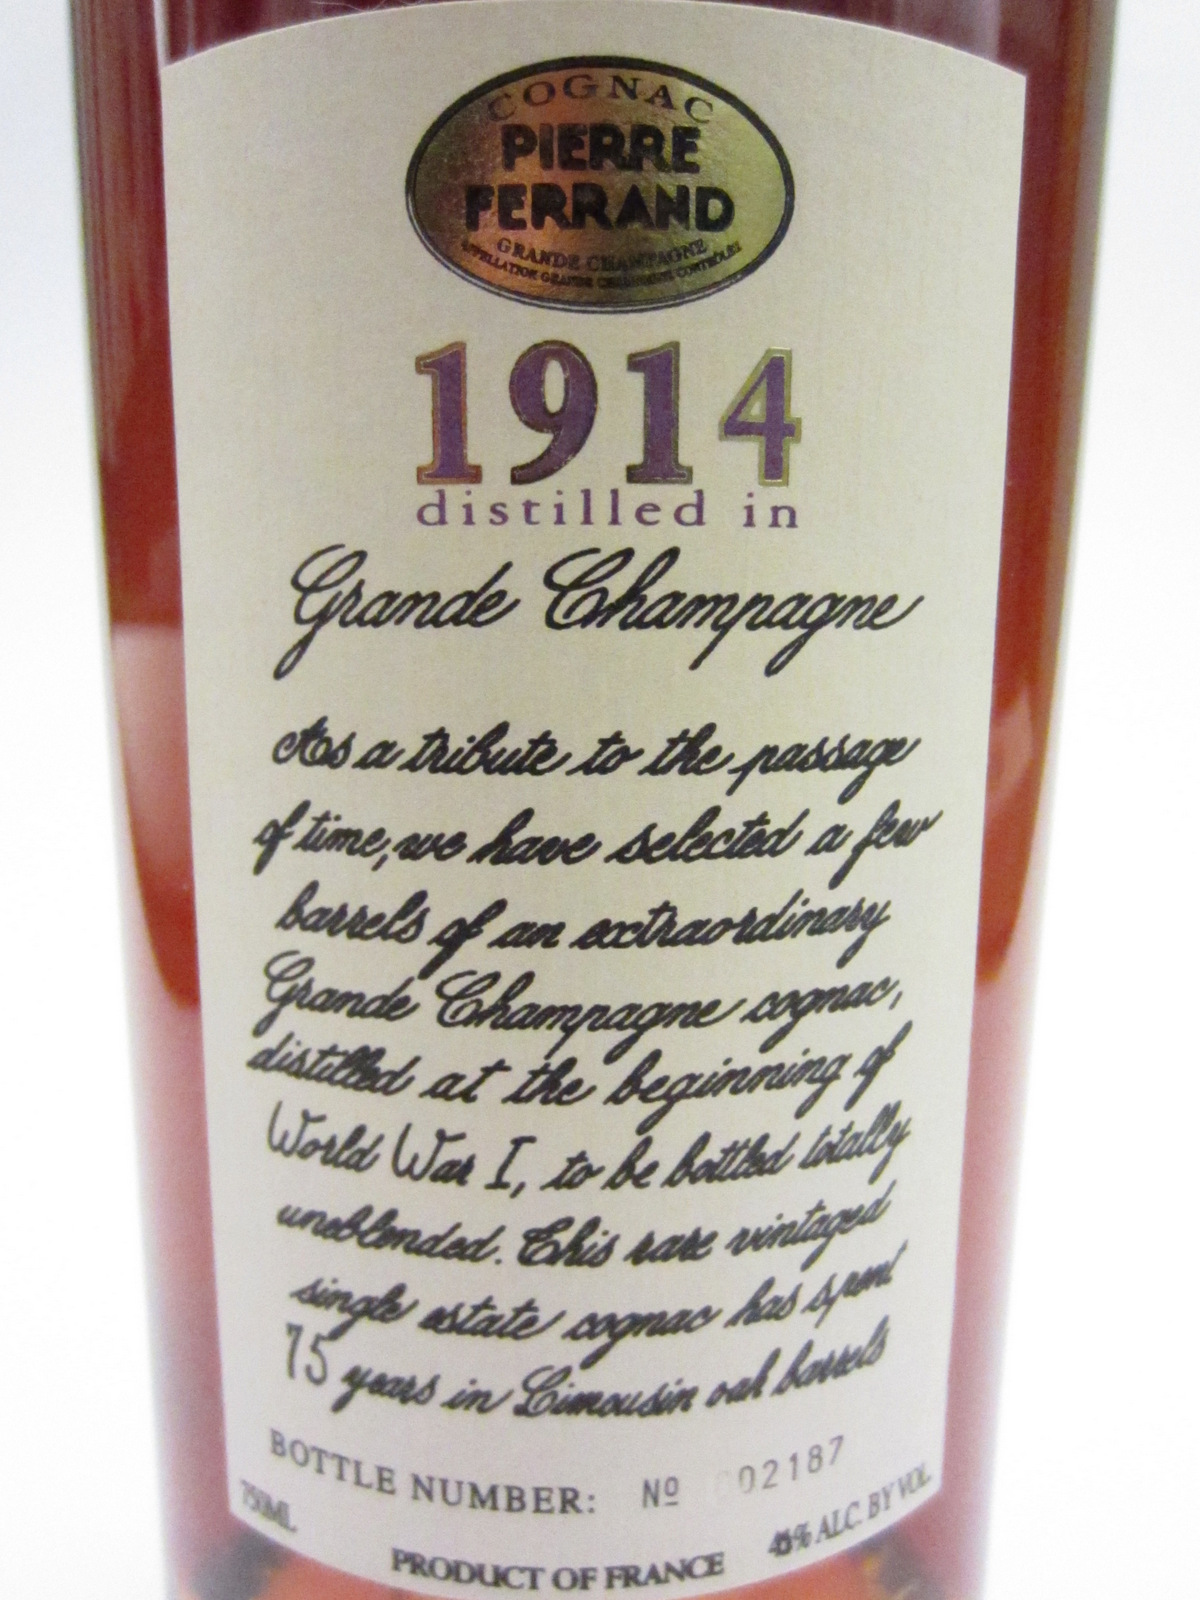 A 1914 Vintage Grande Champagne Cognac by Pierre Ferrand in the cellar